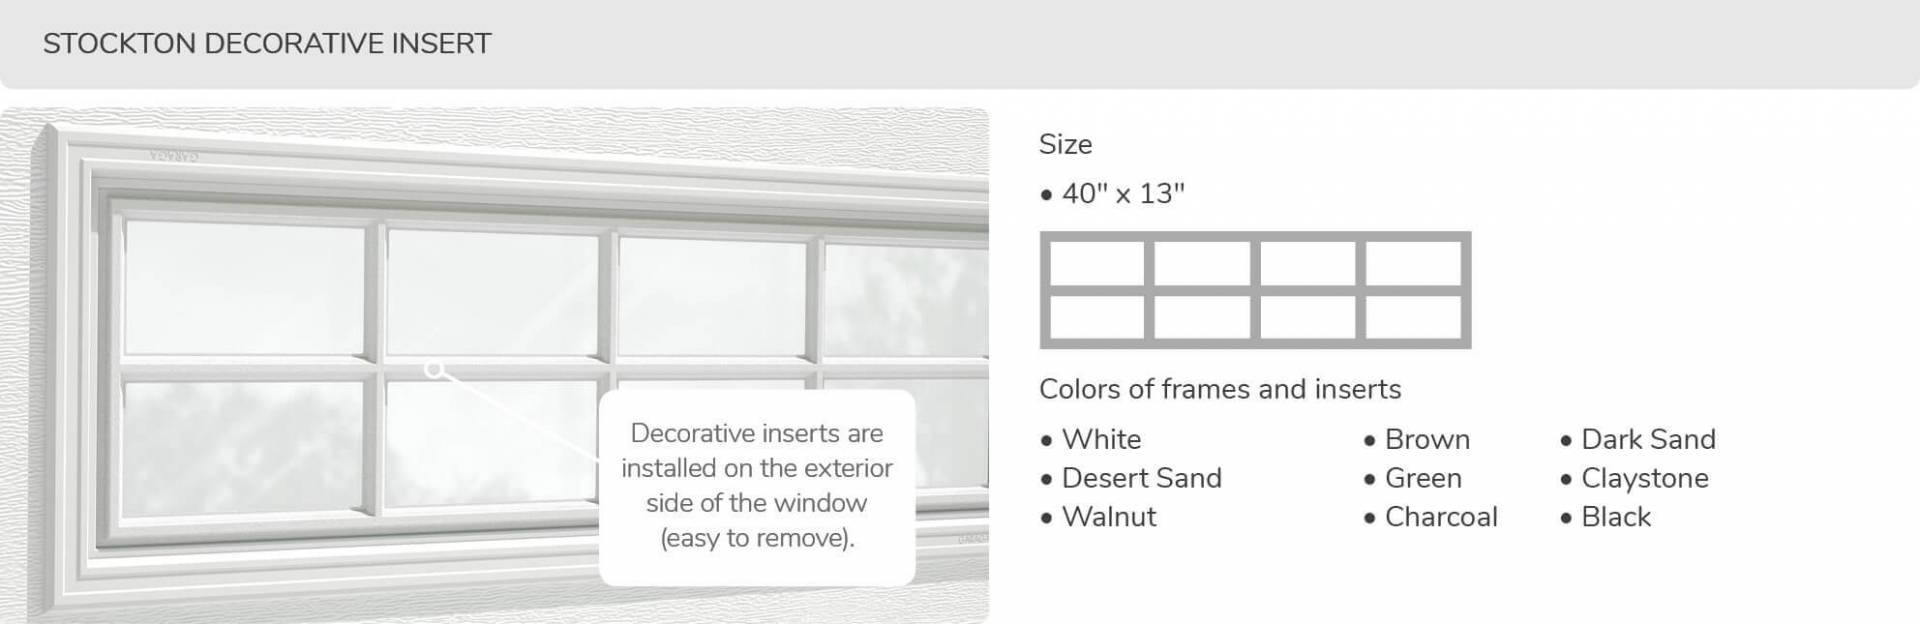 Stockton Decorative Insert, 40' x 13', available for door R-16